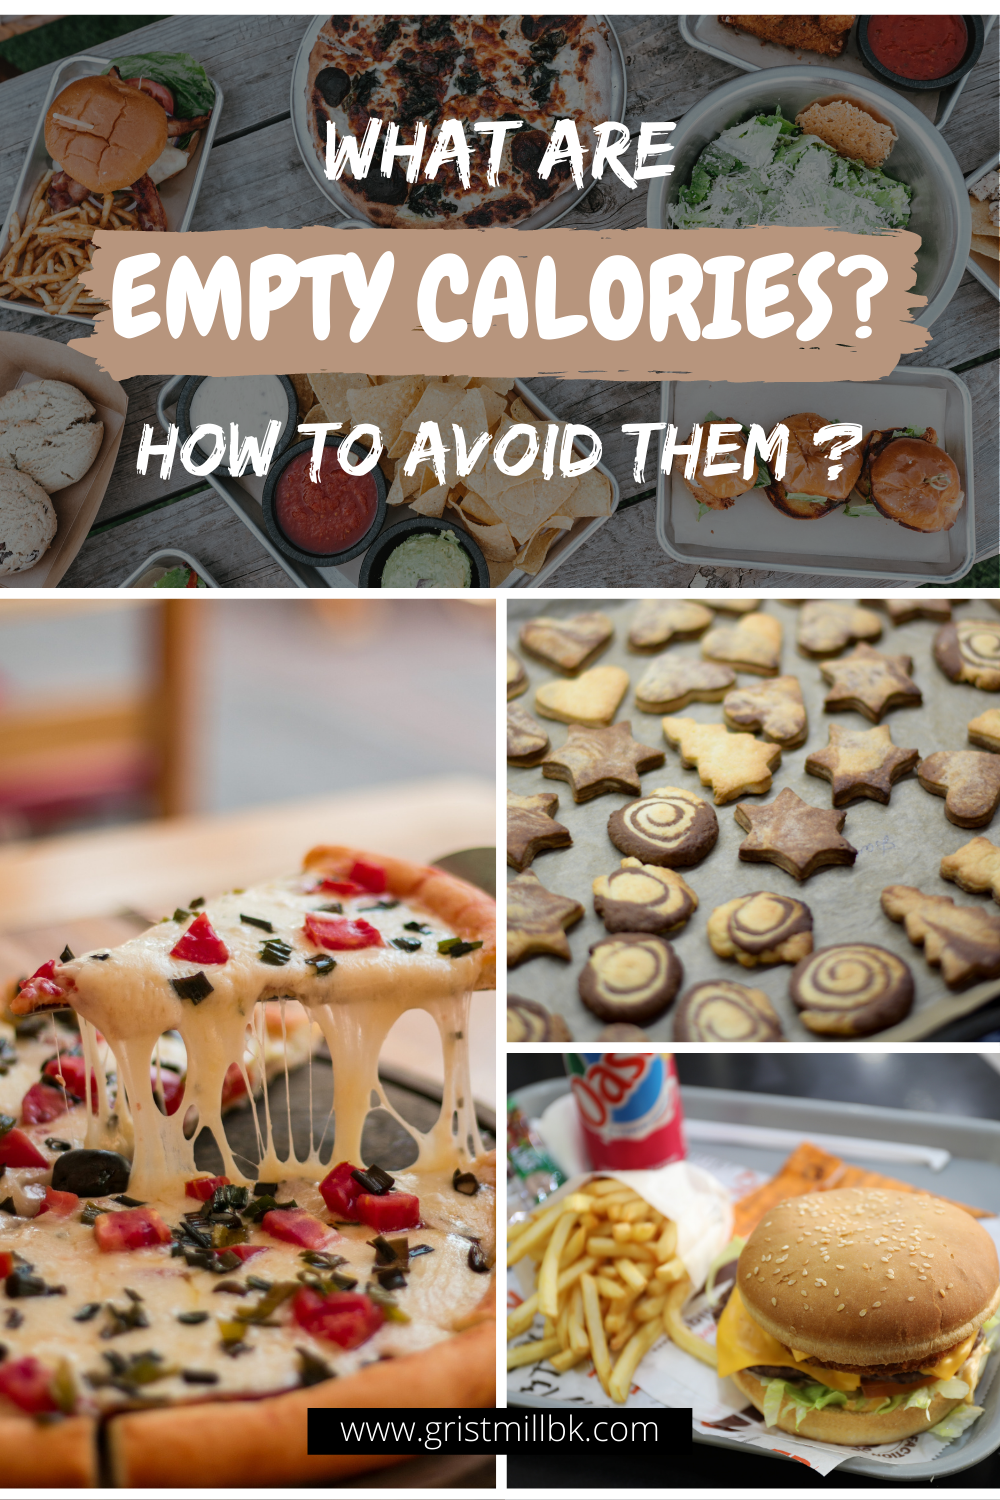 What are empty calories